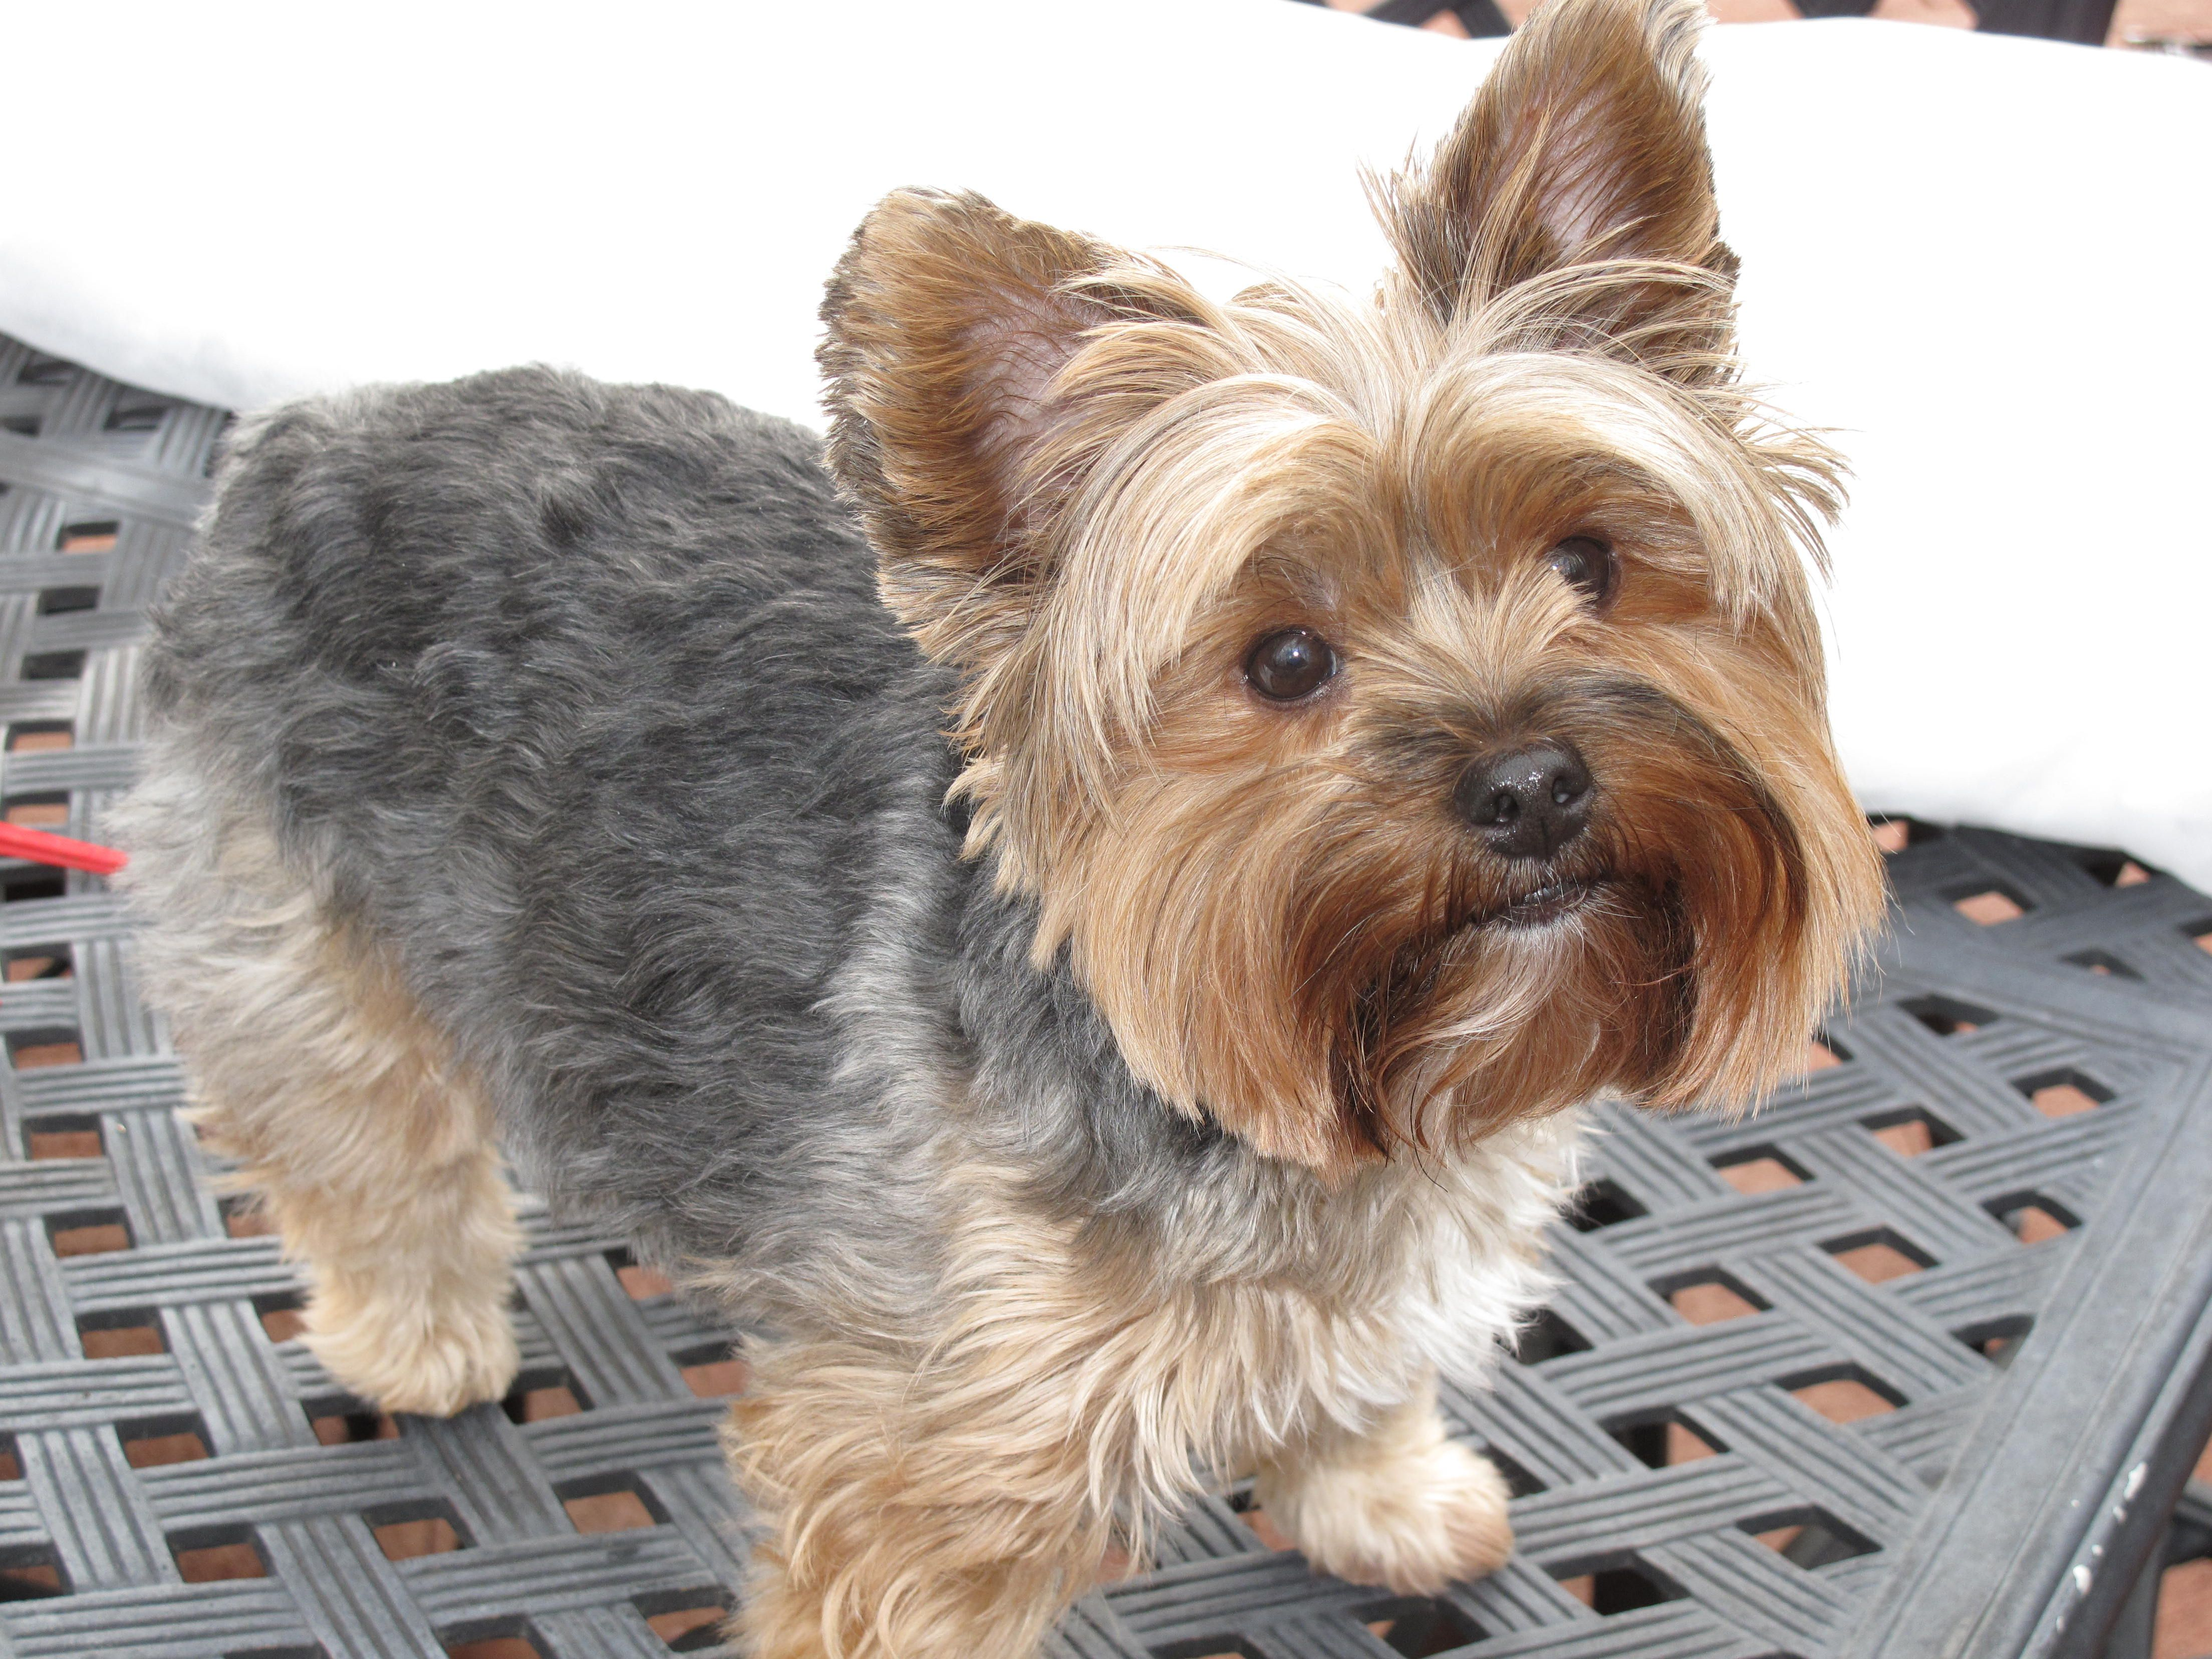 yorkie dog haircuts | yorkie | yorkie haircuts, yorkie dogs